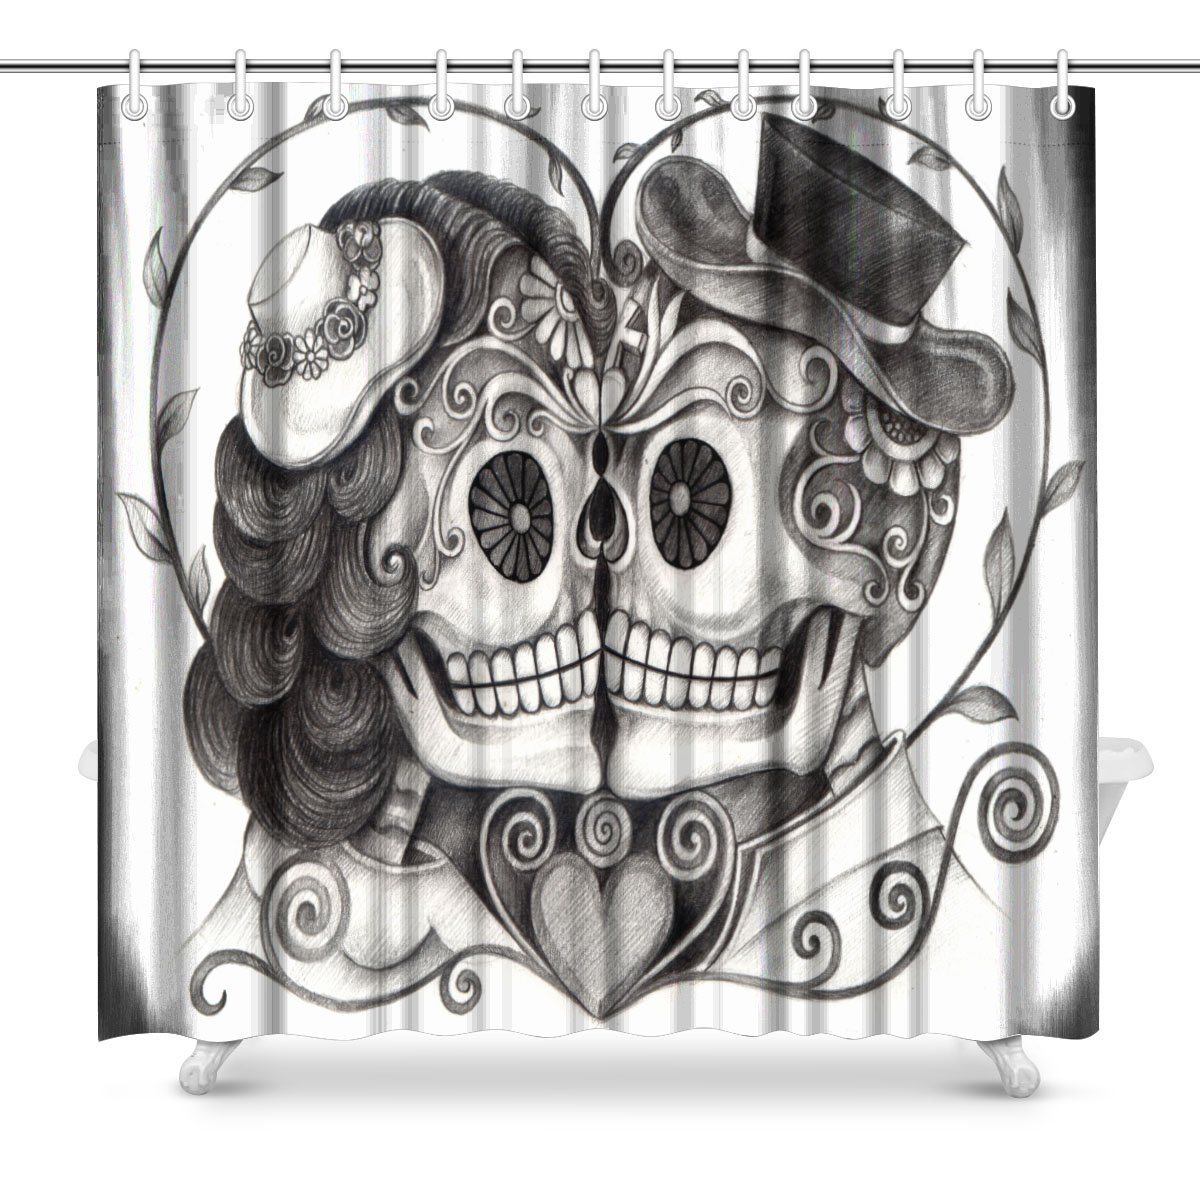 Art Skull Day of the Dead Fabric Shower Curtain Decor with Hooks